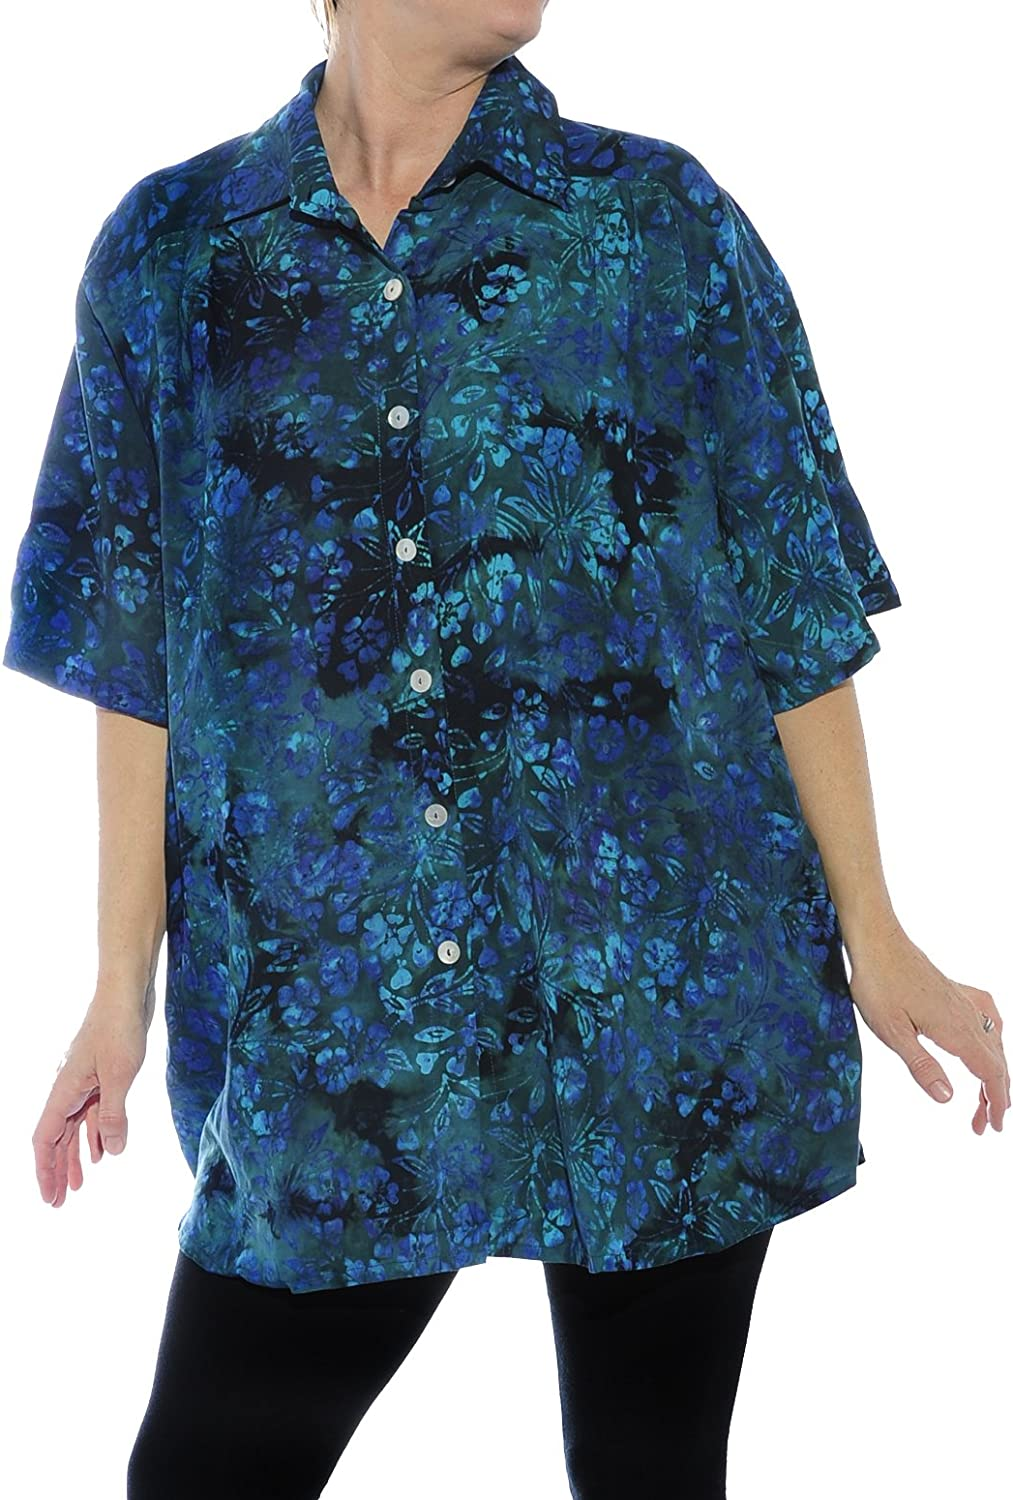 We Be Bop Womens Batik Plus Size Flora Vista New Tunic Top 0 X 1X 2 X 3X 4 X 5X 6X